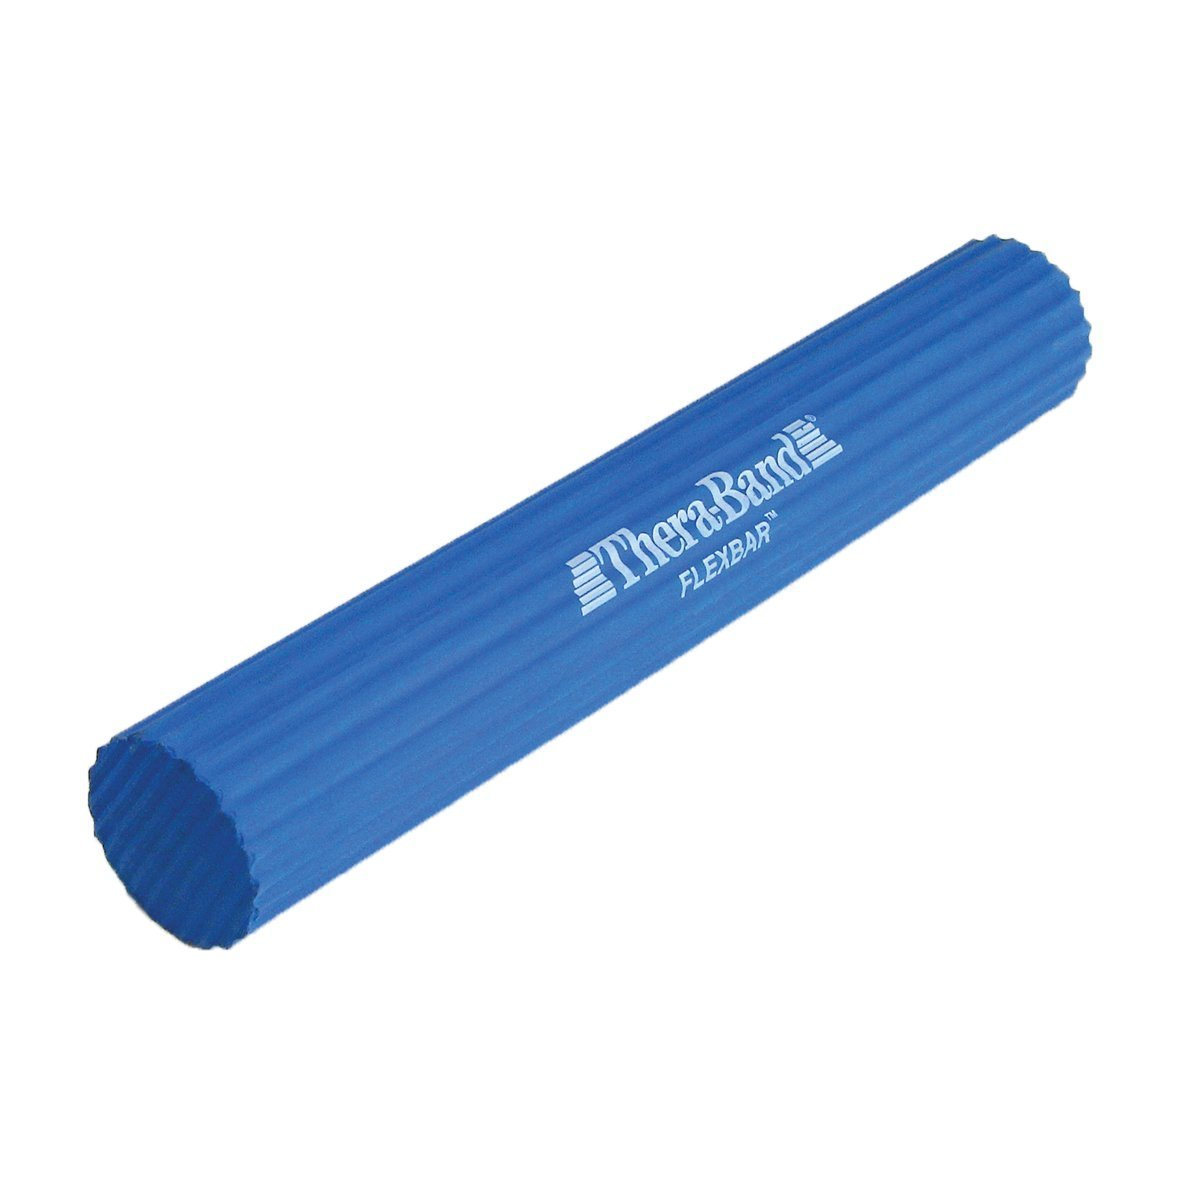 TheraBand FlexBar, Tennis Elbow Therapy Bar, Relieve Tendonitis Pain & Improve Grip Strength, Resistance Bar for Golfers Elbow & Tendinitis, Blue, Heavy, Advanced by TheraBand (Image #1)